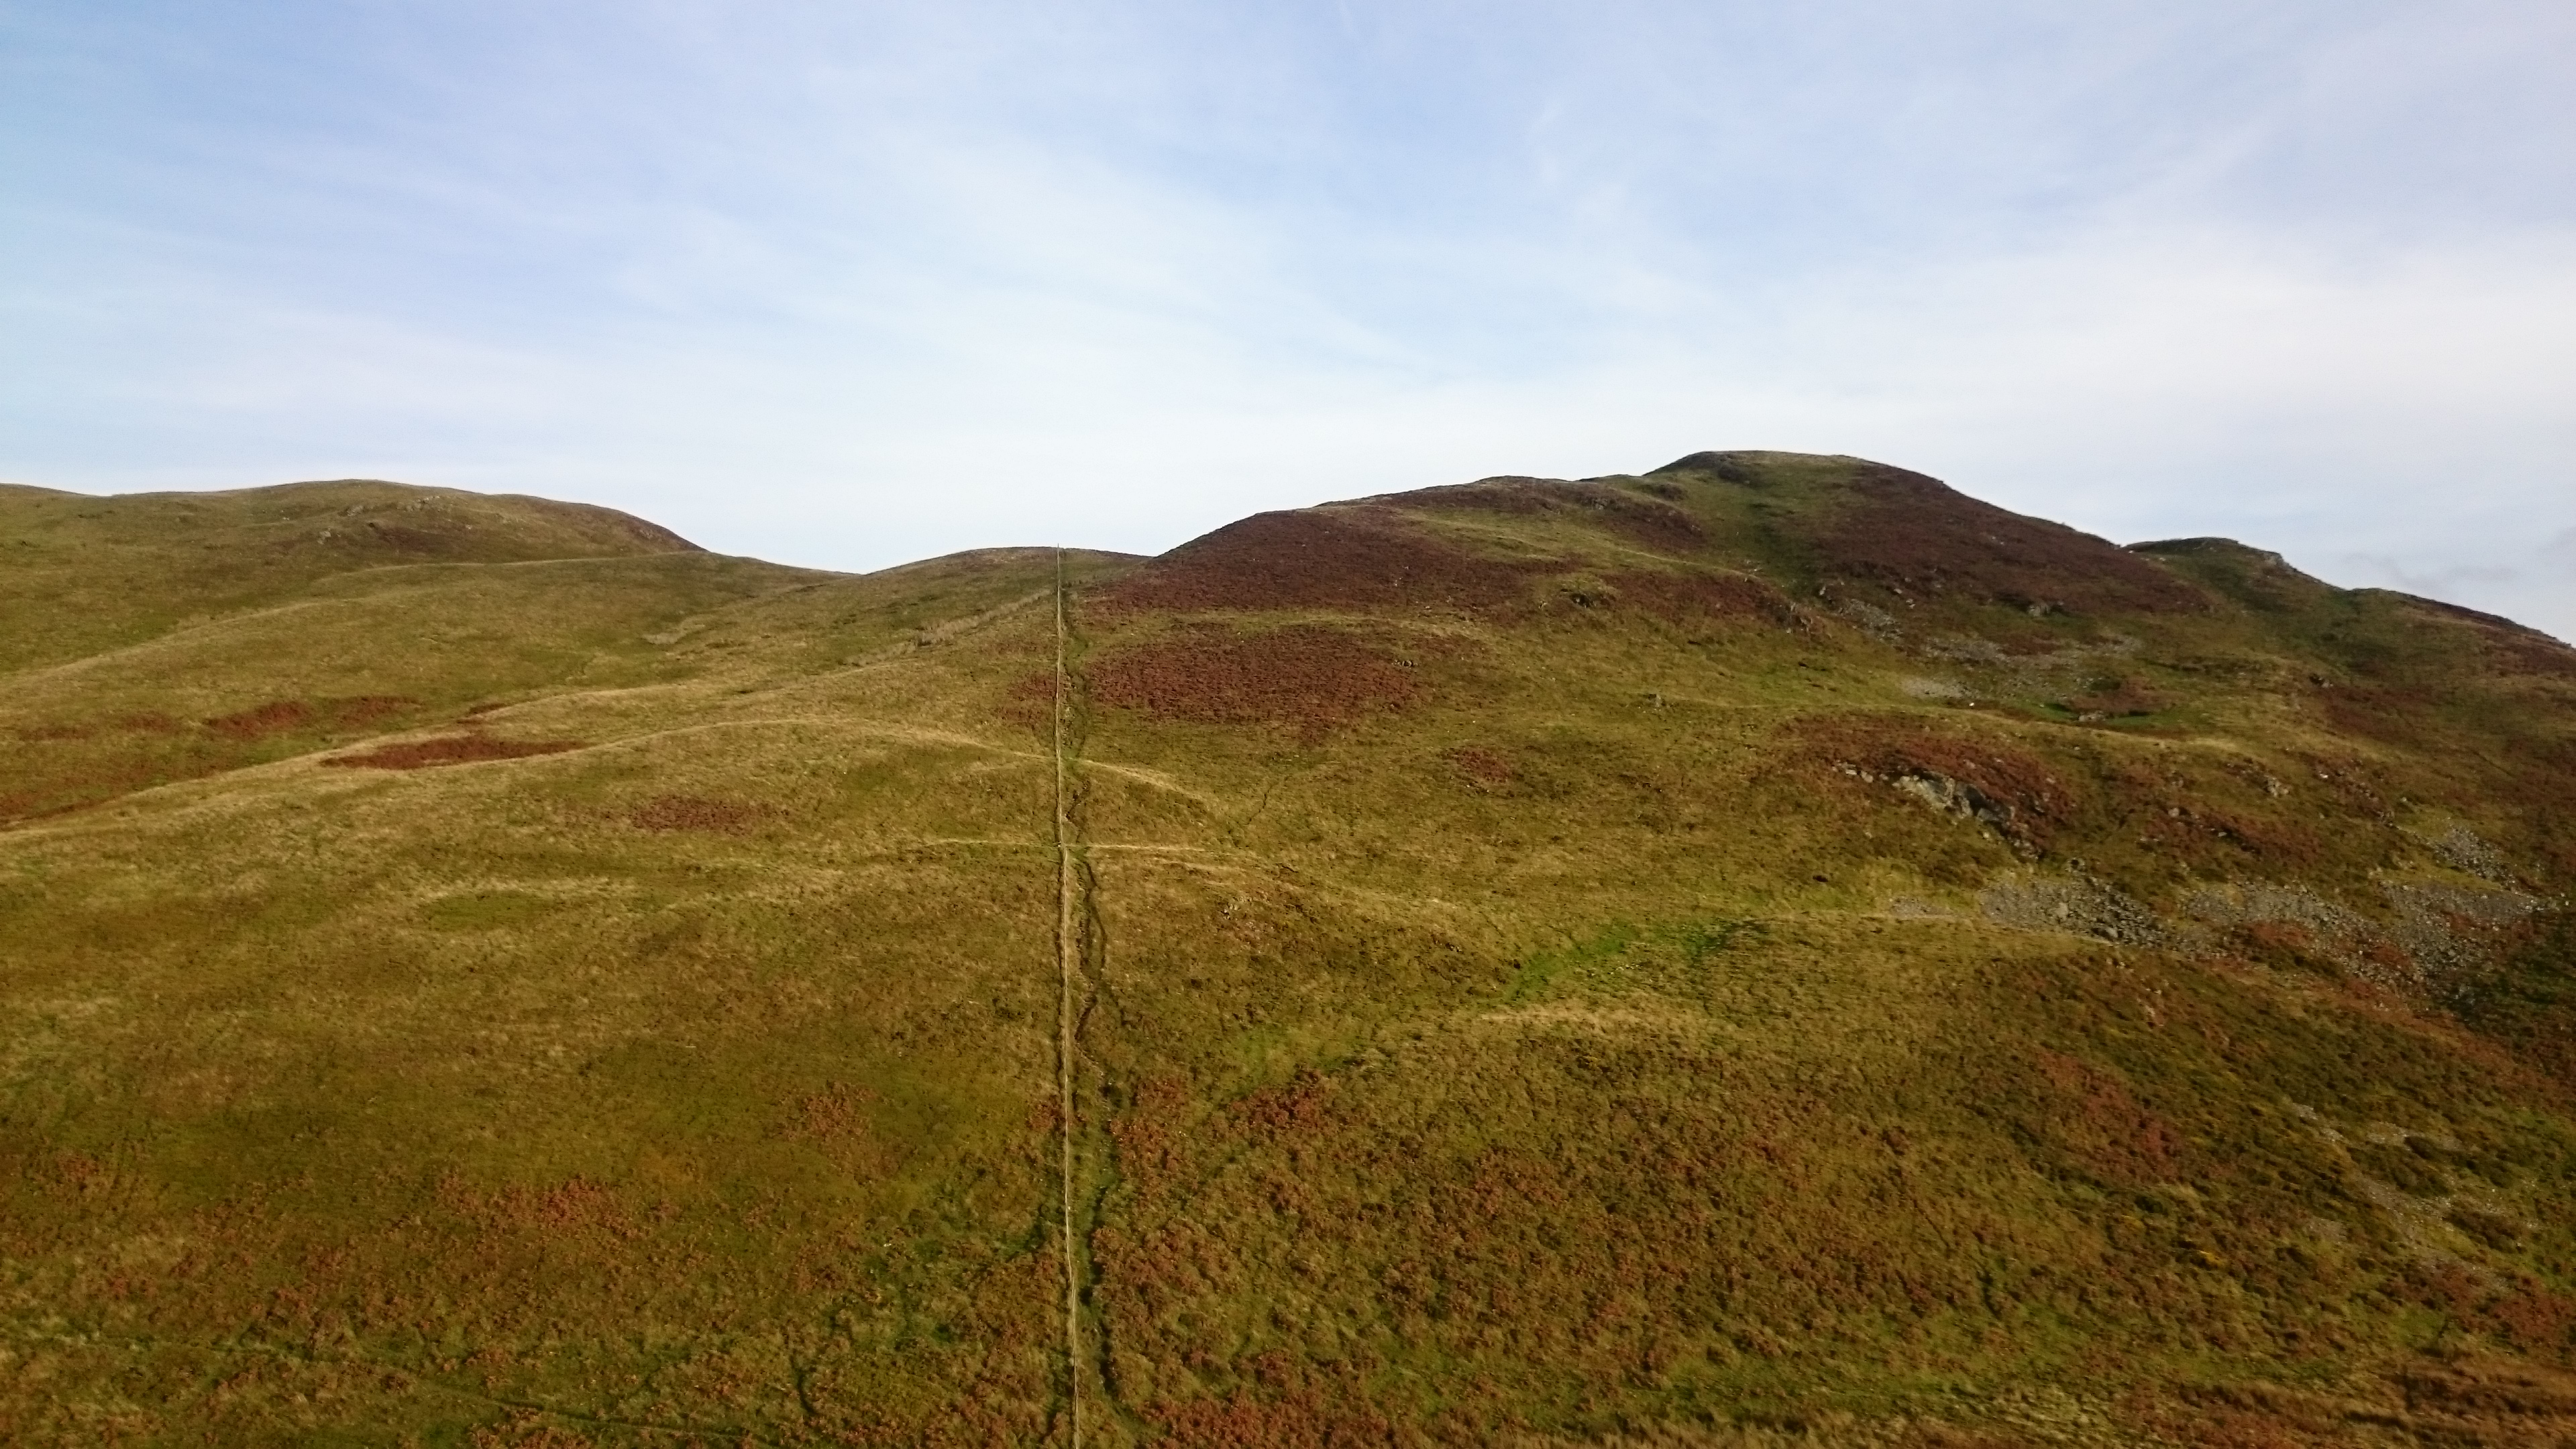 The two main tops of Low Fell